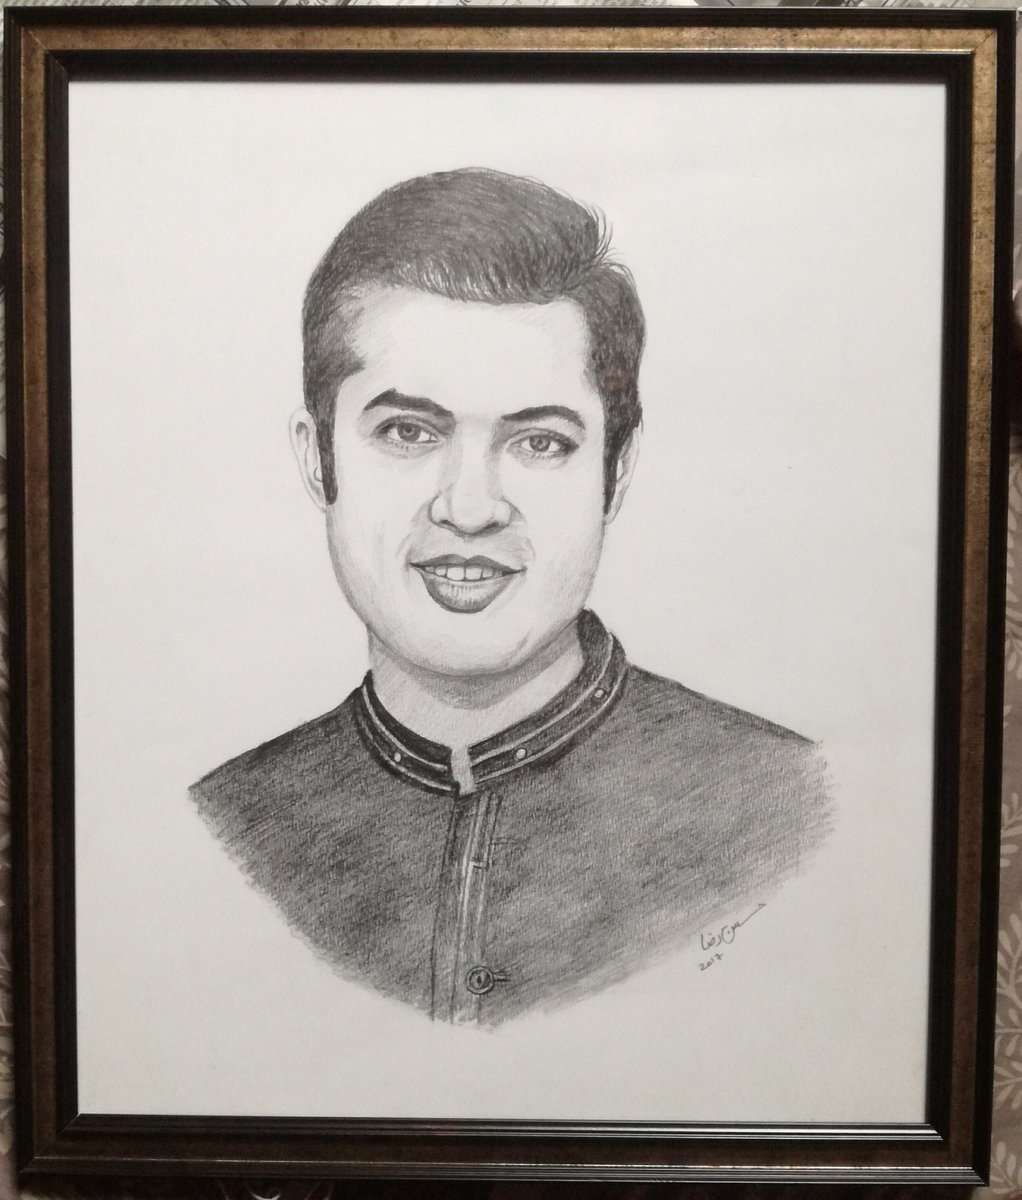 Throw back to 6, November,2017..When I&#39;ll gifted the portrait to Iqrar Bhai  &amp; he said &#39;oooo Hassan ye AP NY bnaya hai&#39;?..Me: g iqrar Bhai mainy bnaya hai..iqrar Bhai: good bohot acha bna hai.. shabash @iqrarulhassan  @fara_yousaf<br>http://pic.twitter.com/BKp1y2ViOh